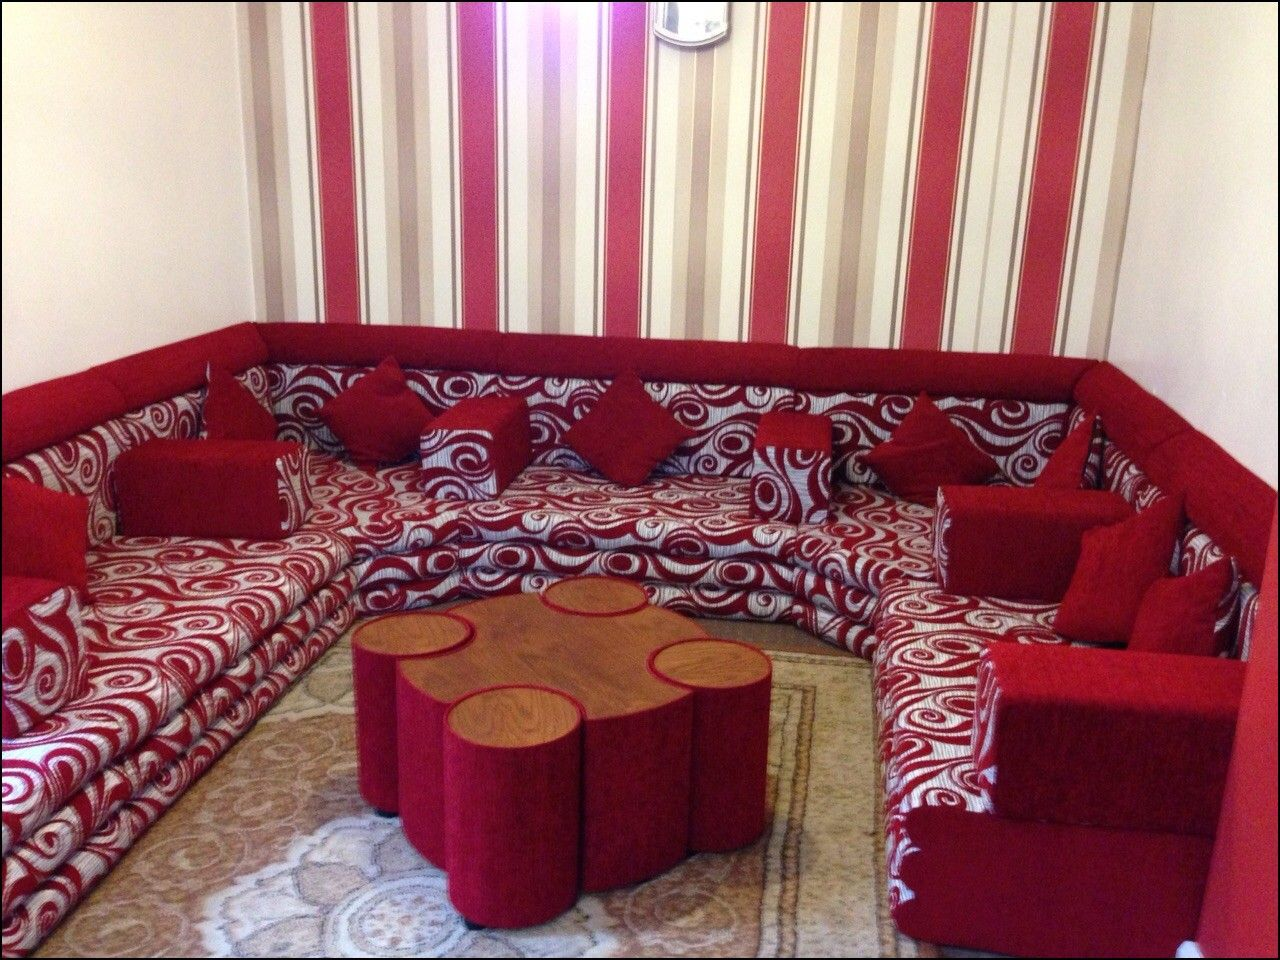 Arab Style Couches Minimalist Living Room Easy Home Decor Gothic Home Decor